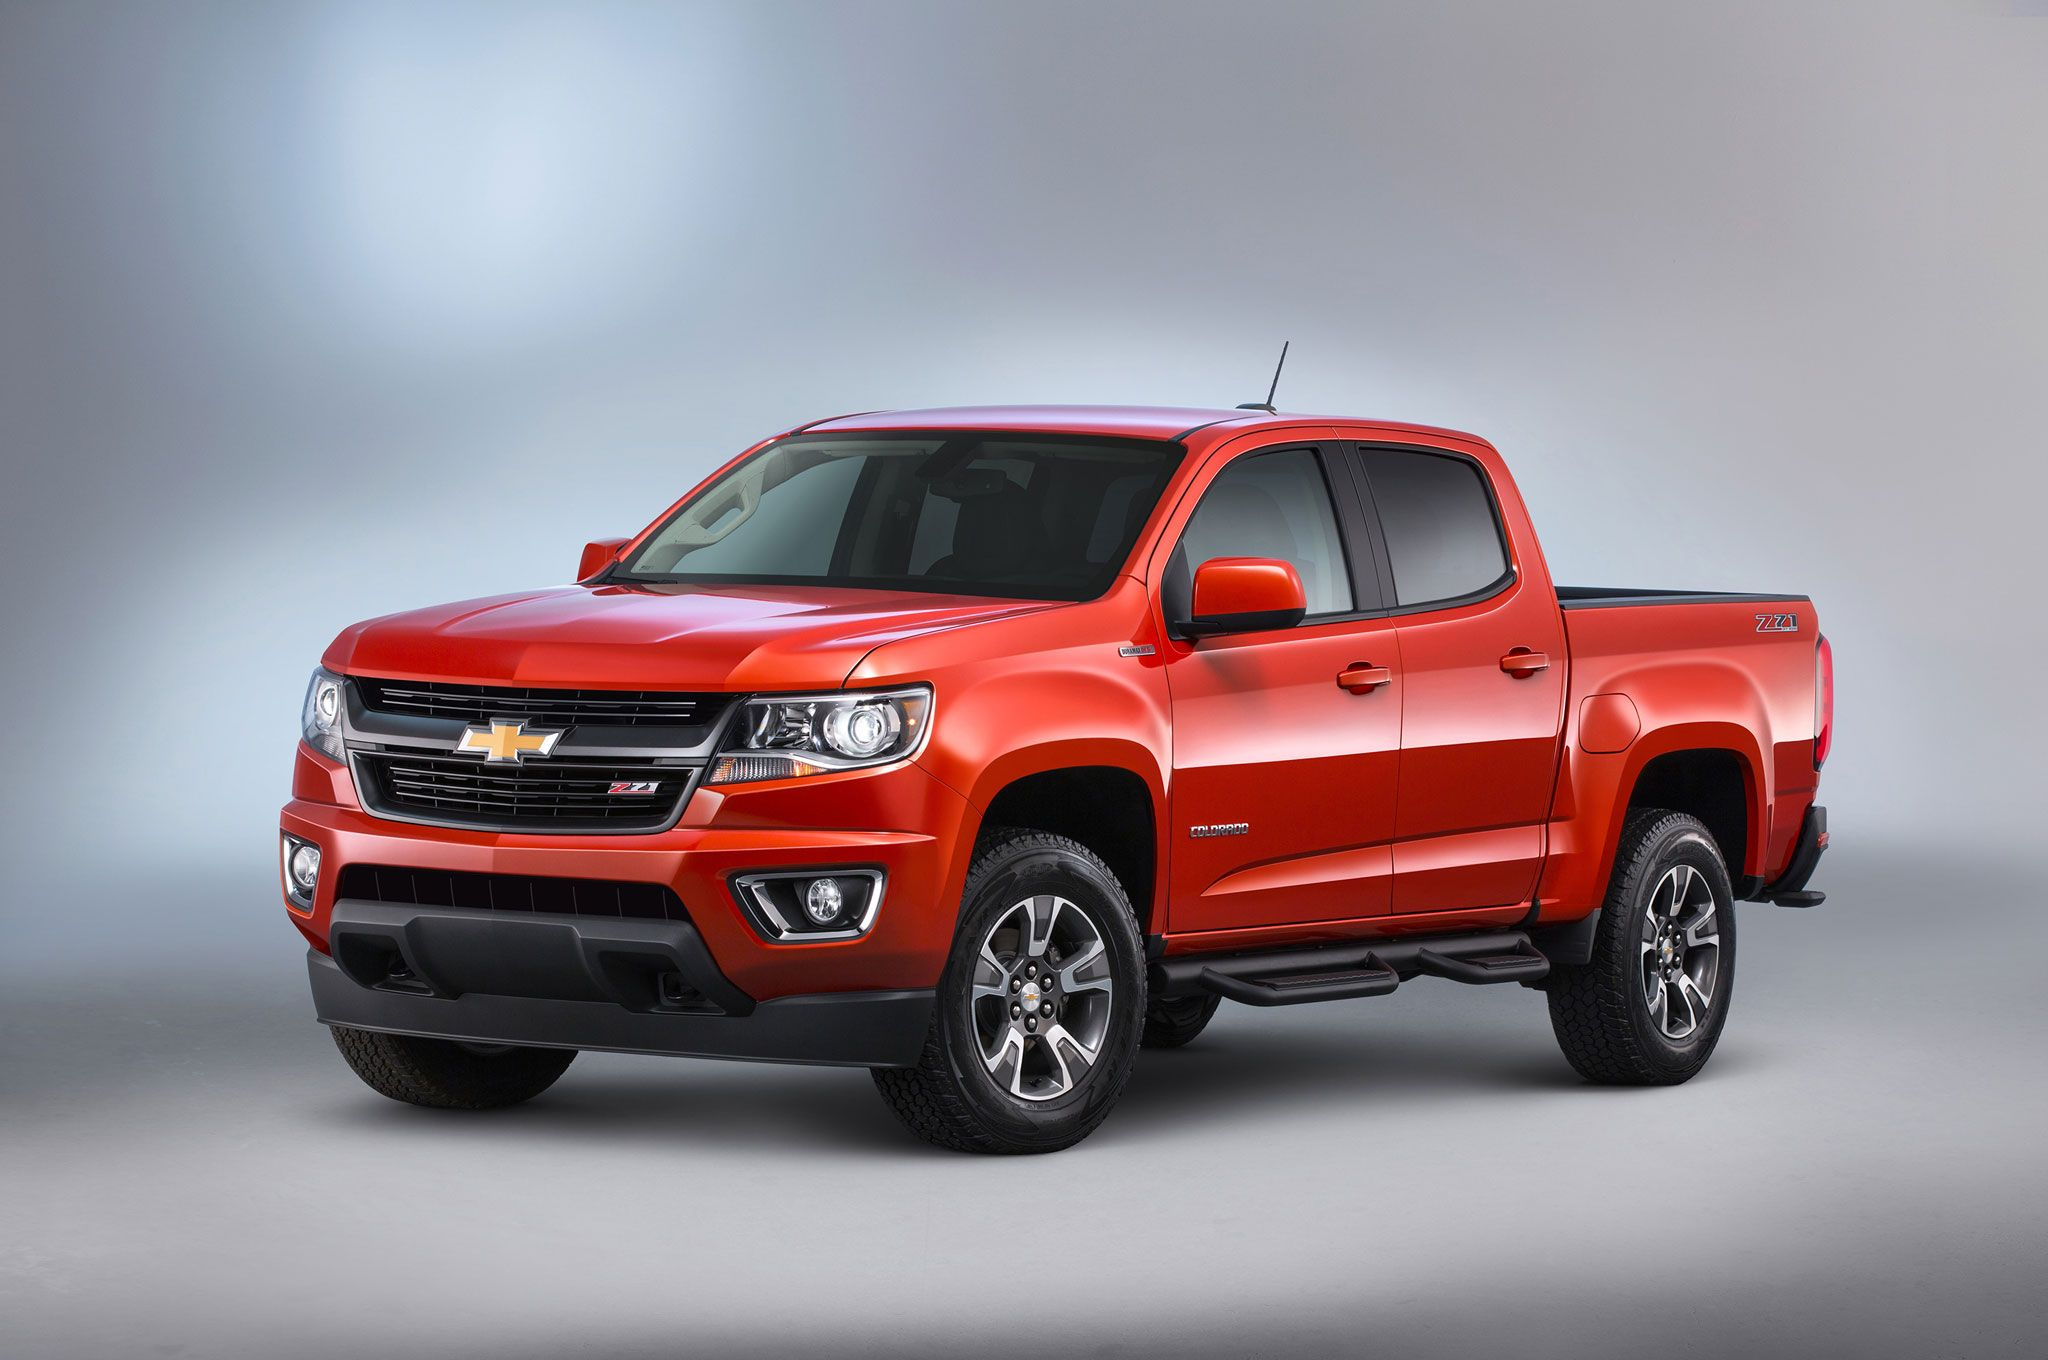 2016 chevy colorado diesel tow ratings power output revealed news. Black Bedroom Furniture Sets. Home Design Ideas